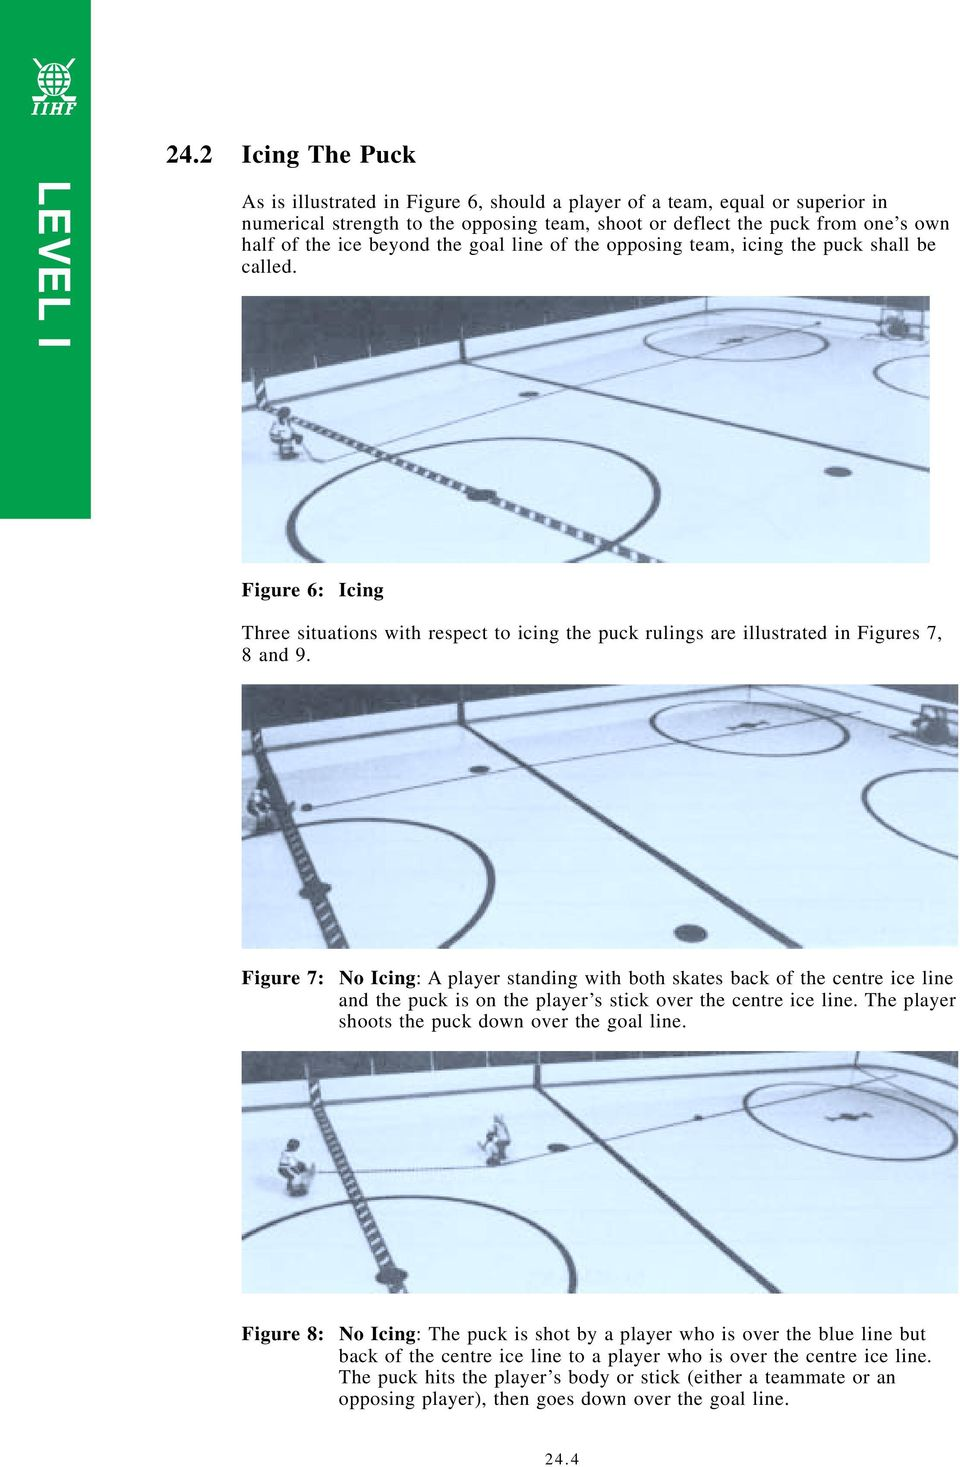 Figure 7: No Icing: A player standing with both skates back of the centre ice line and the puck is on the player s stick over the centre ice line. The player shoots the puck down over the goal line.